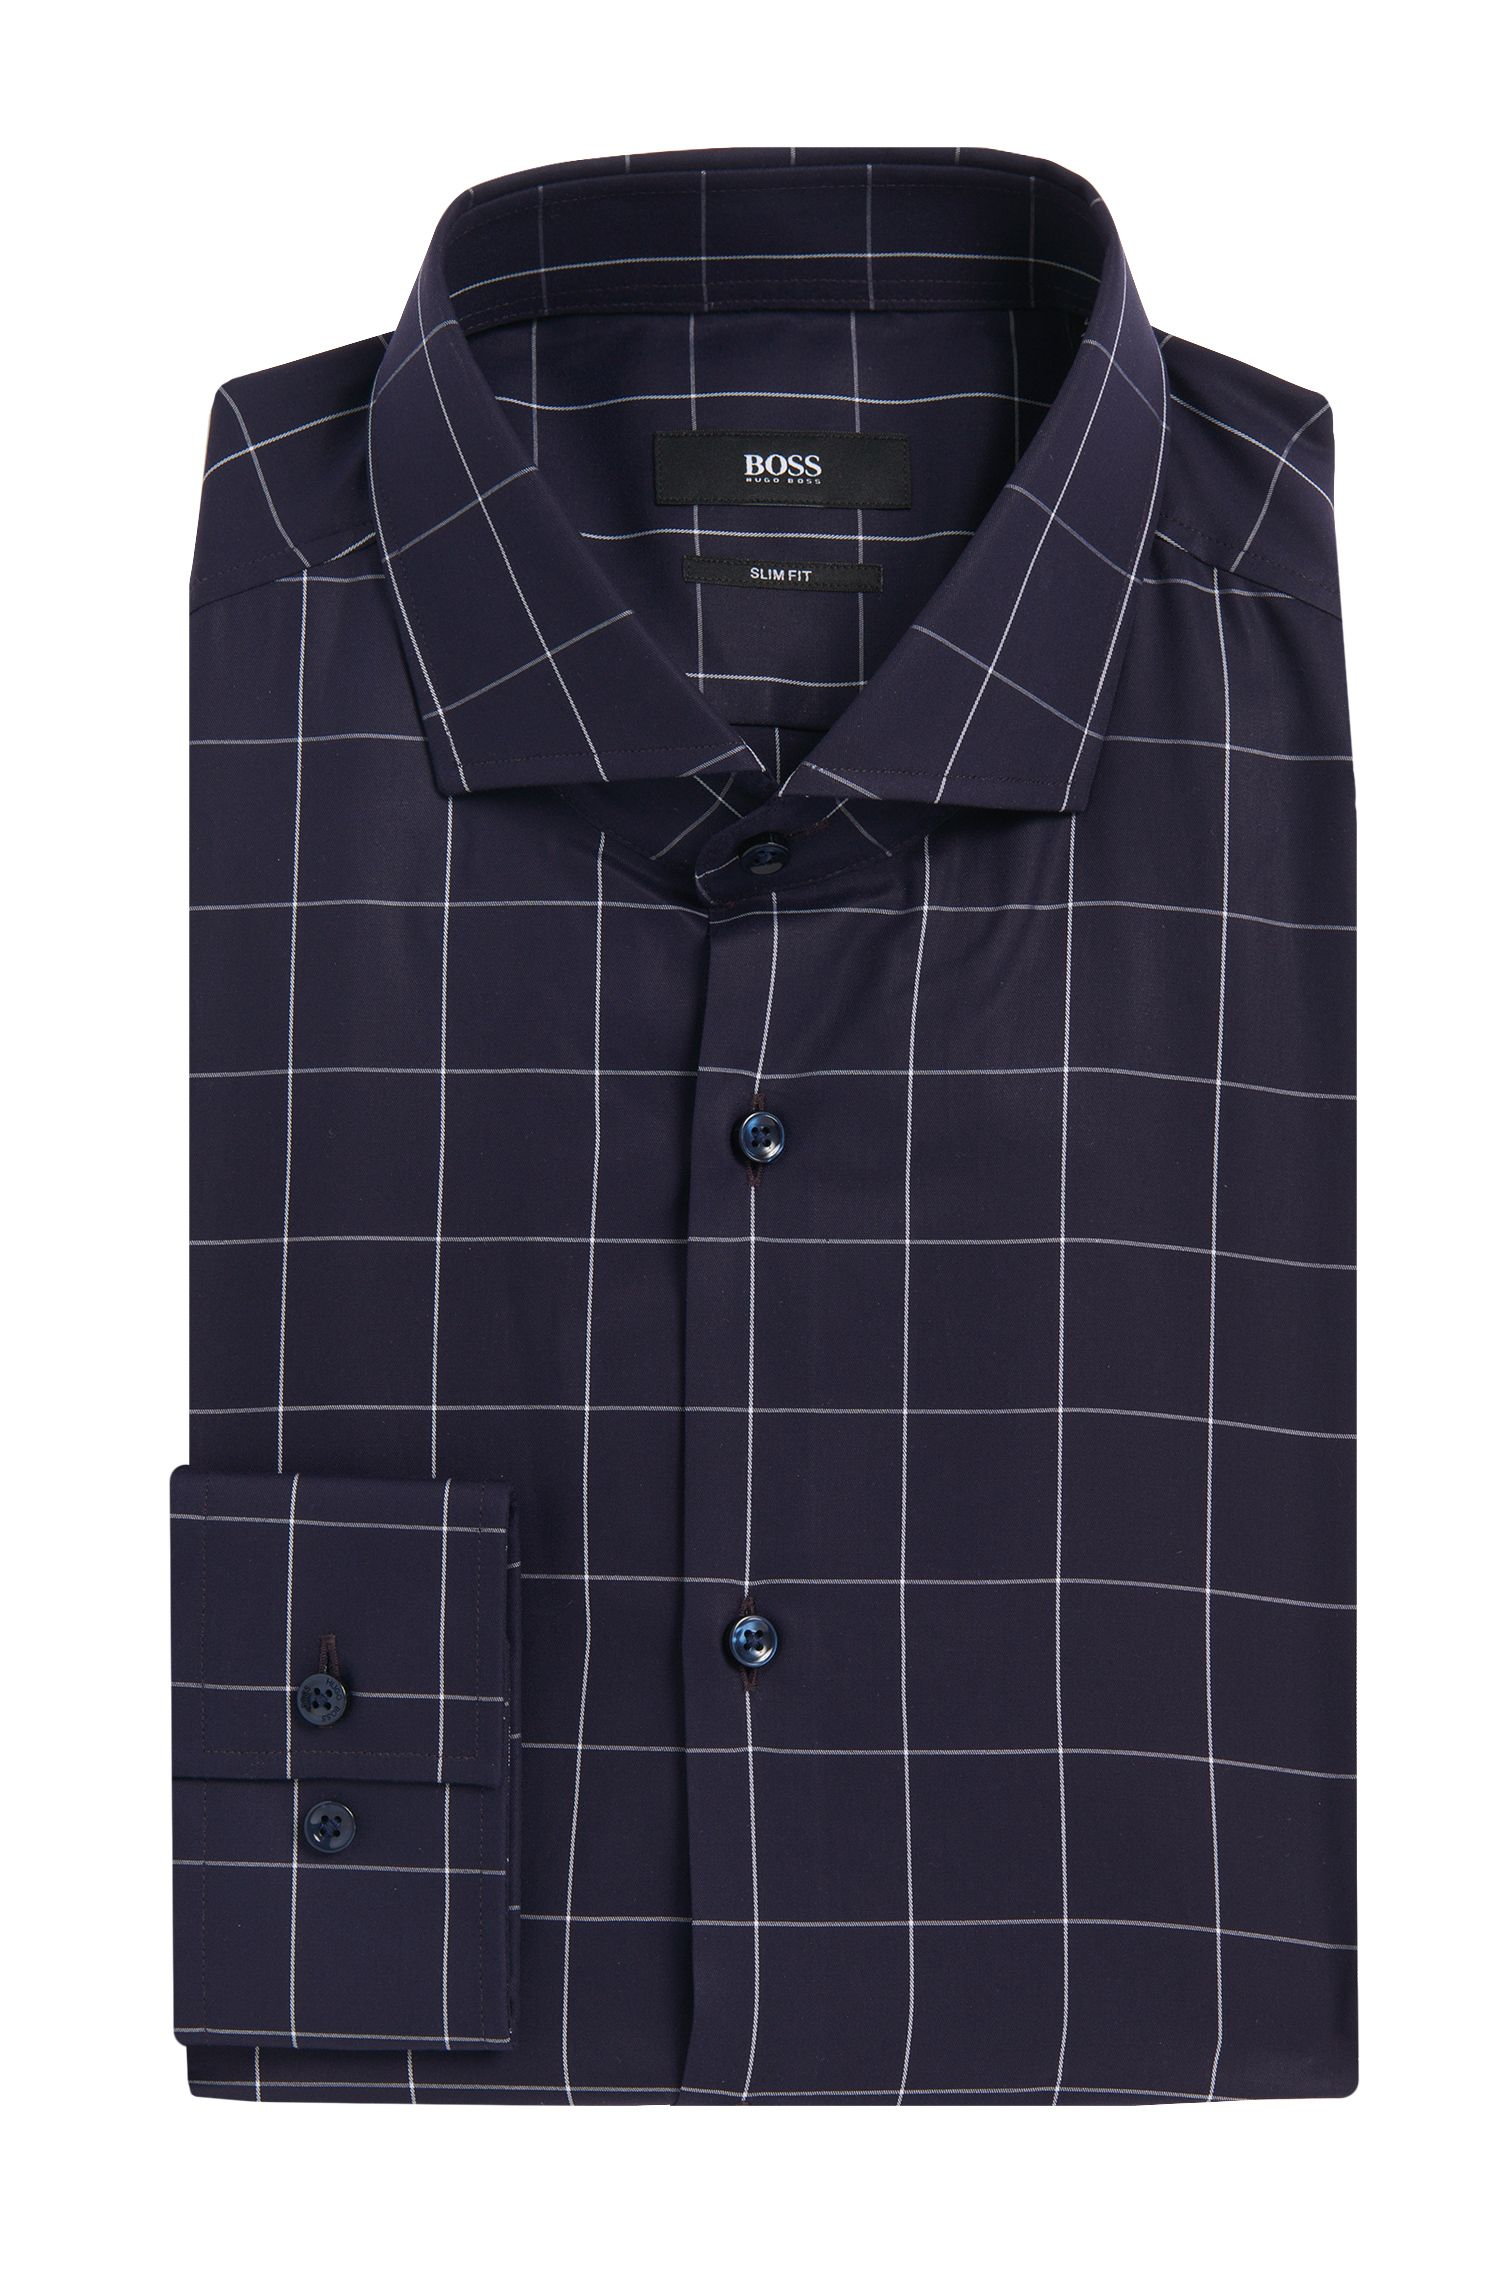 'Jason' | Slim Fit, Italian Cotton Window Pane Dress Shirt